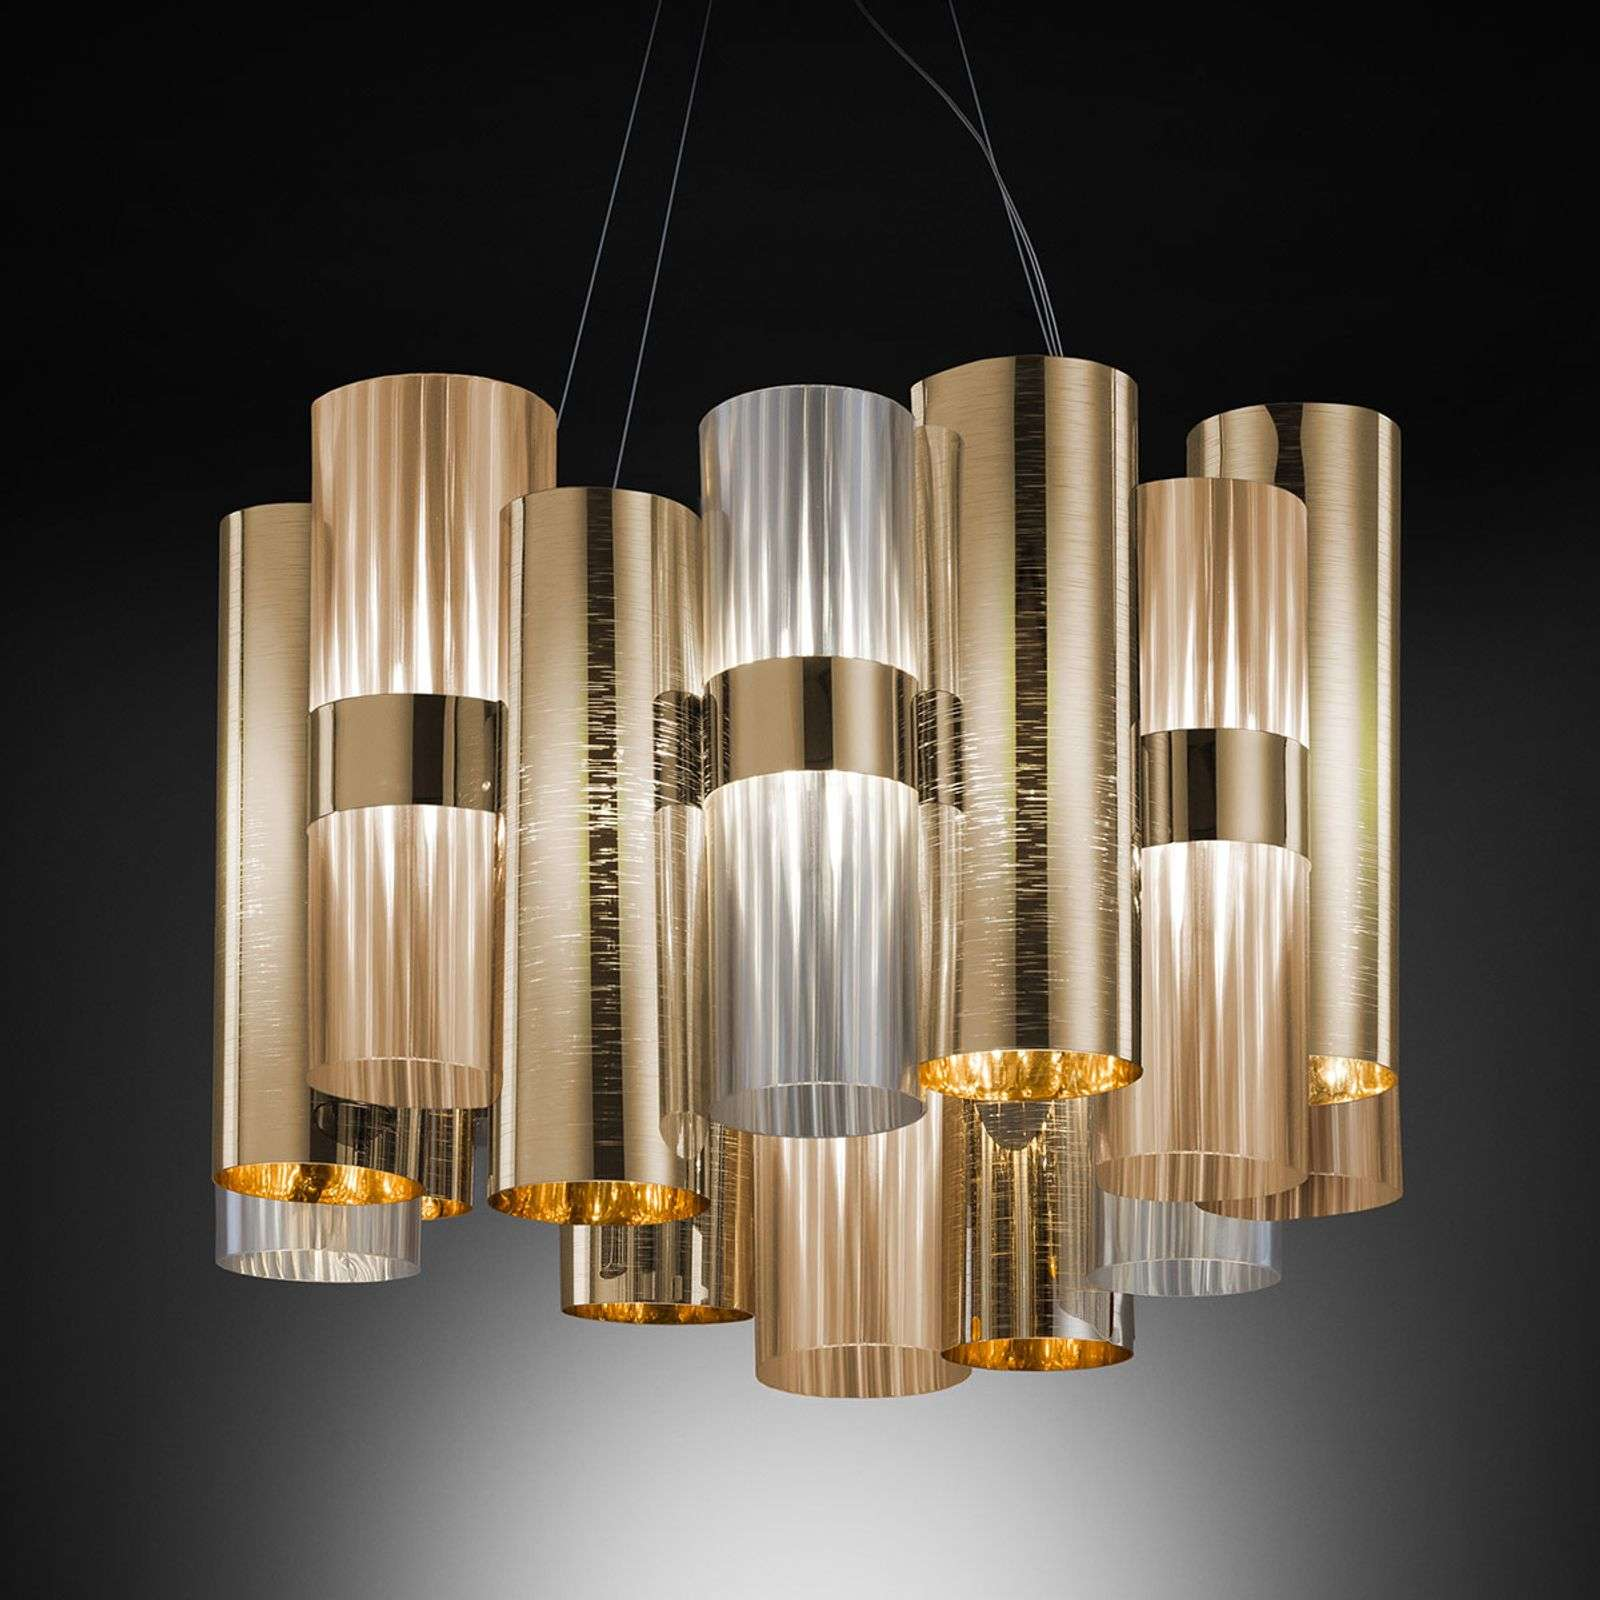 Suspension de designer LED glamour La Lollo, doré